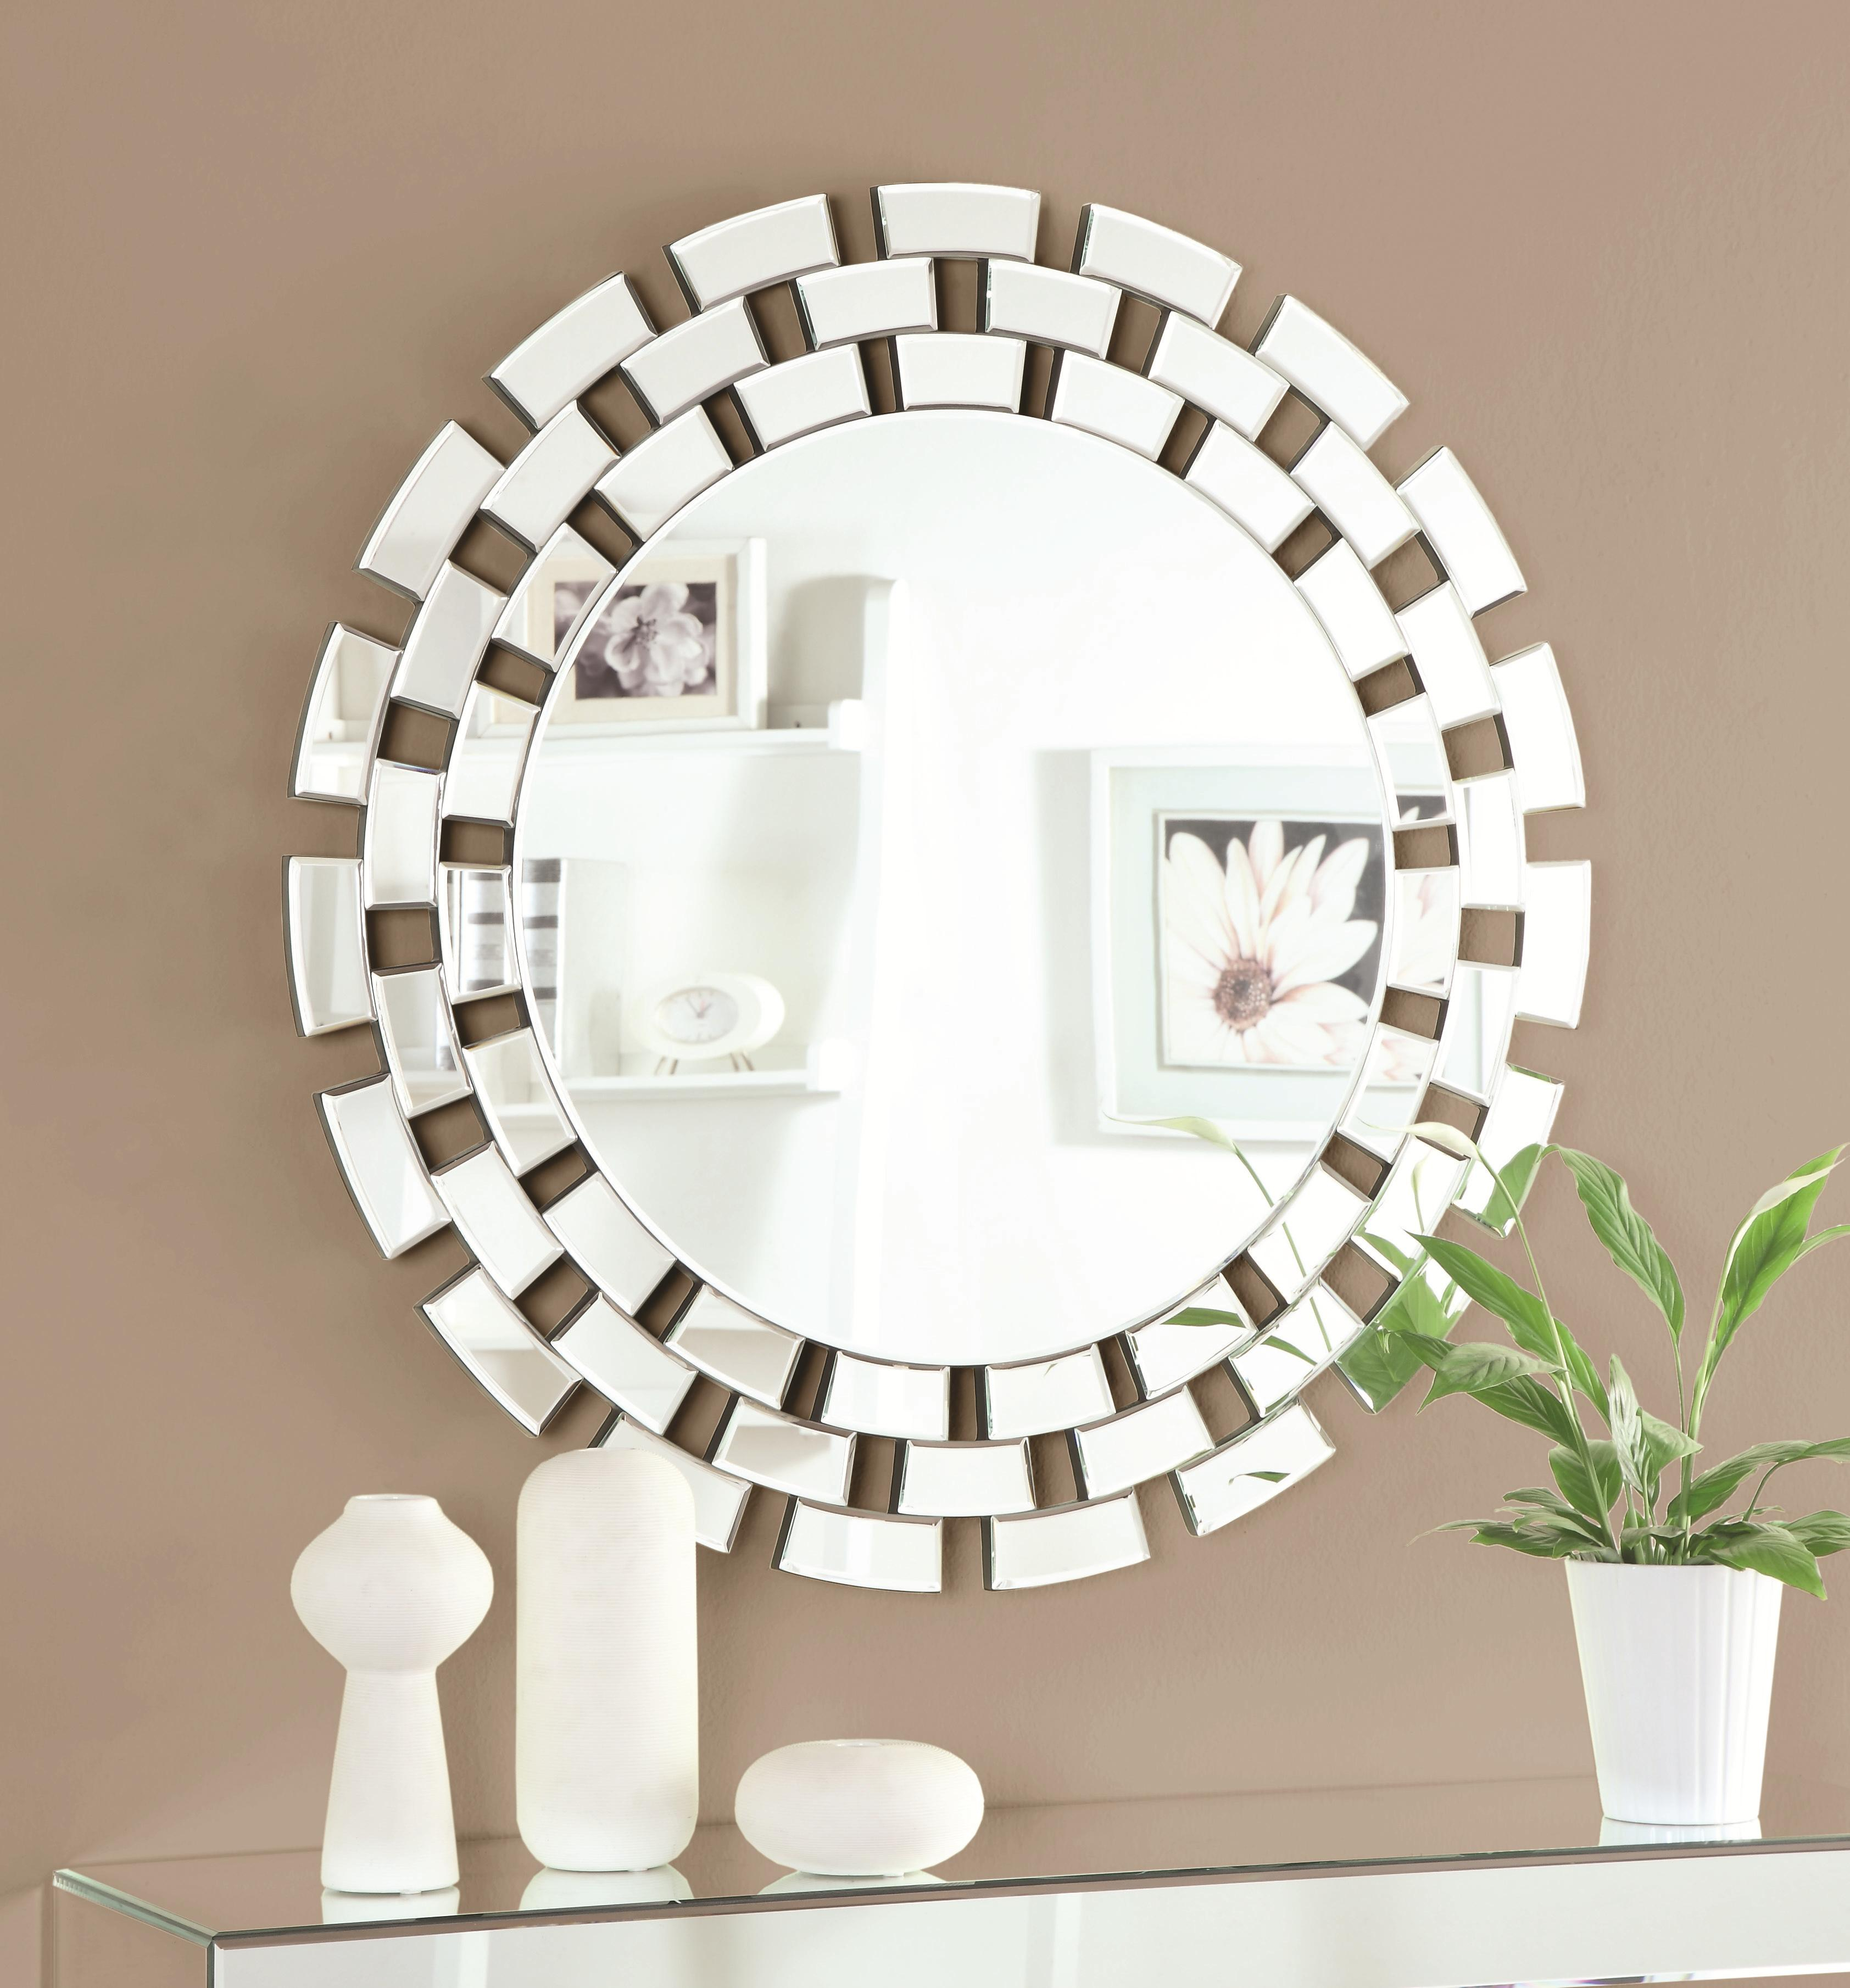 Accent Mirrors Round Wall Mirror With Geometric Frame With Regard To Accent Mirrors (Image 8 of 20)